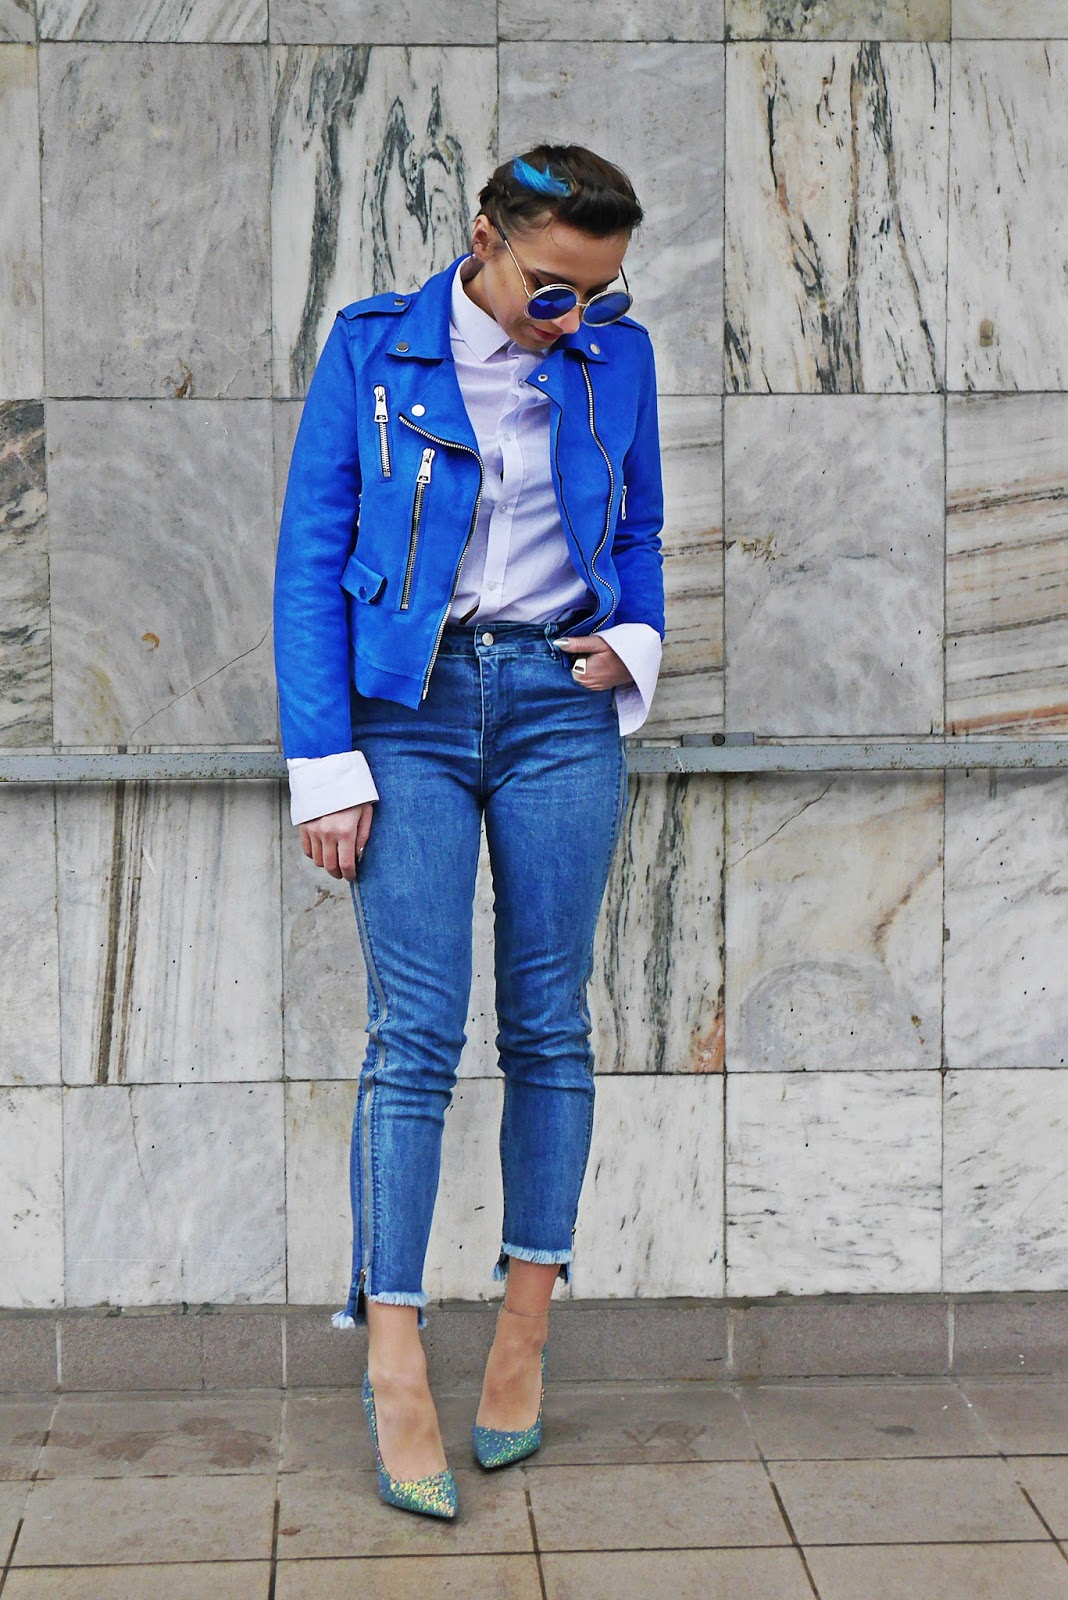 10_blue_biker_jacket_denim_pants_glitter_heels_shoes_karyn_blog_modowy_070118a